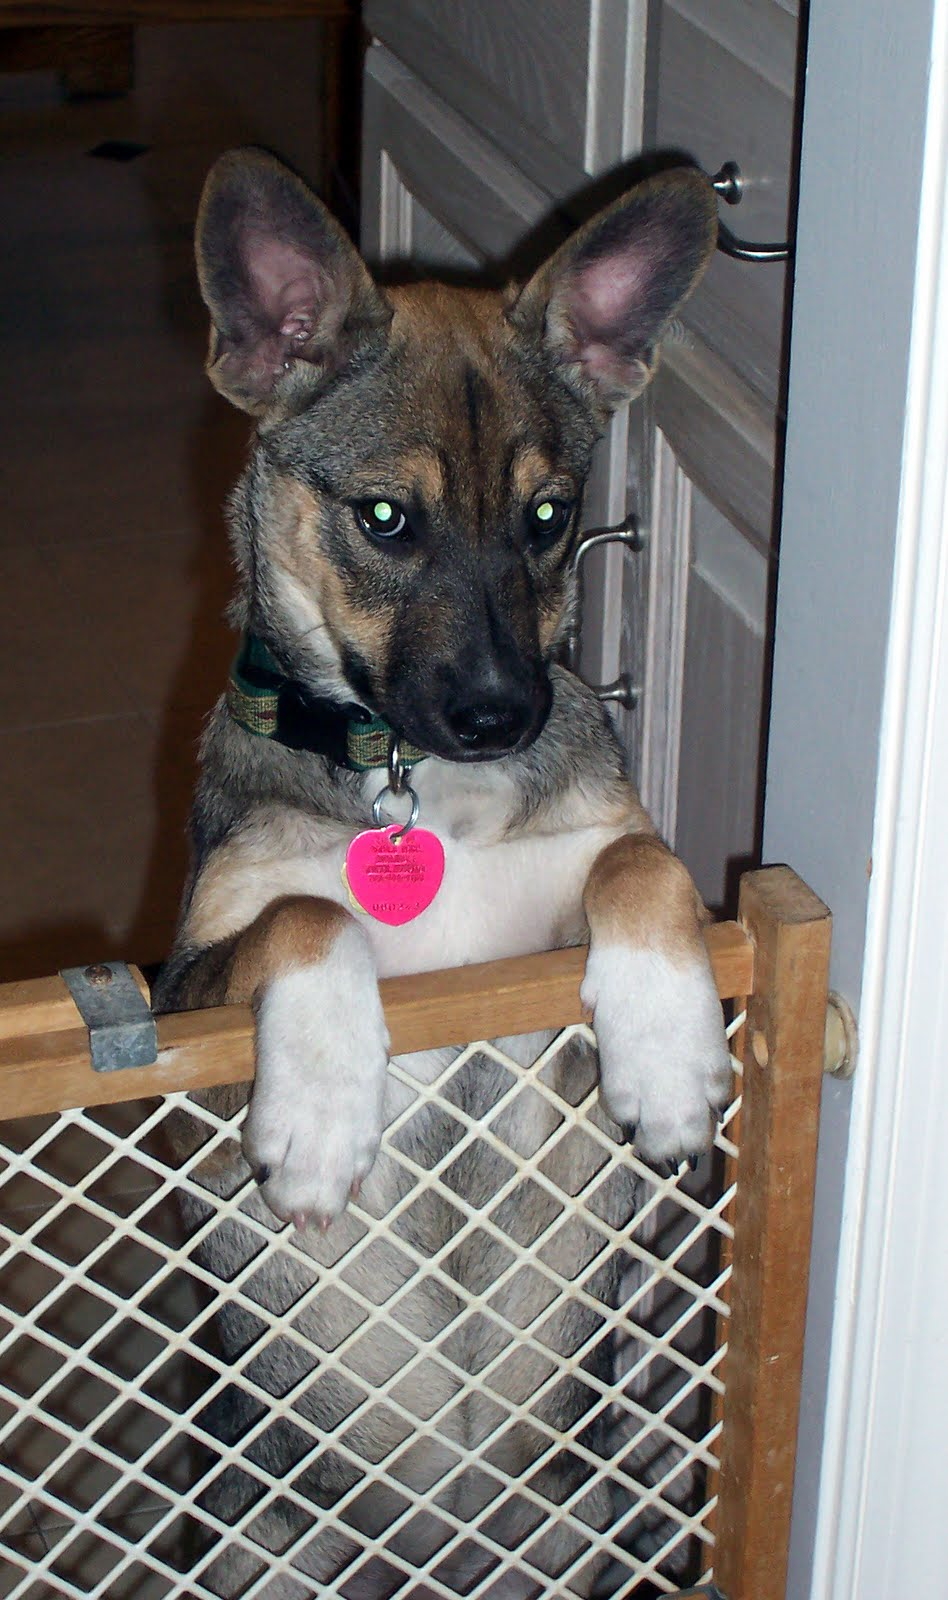 Norwegian Elkhound German Shepherd Mix You confirmed the elkhound,